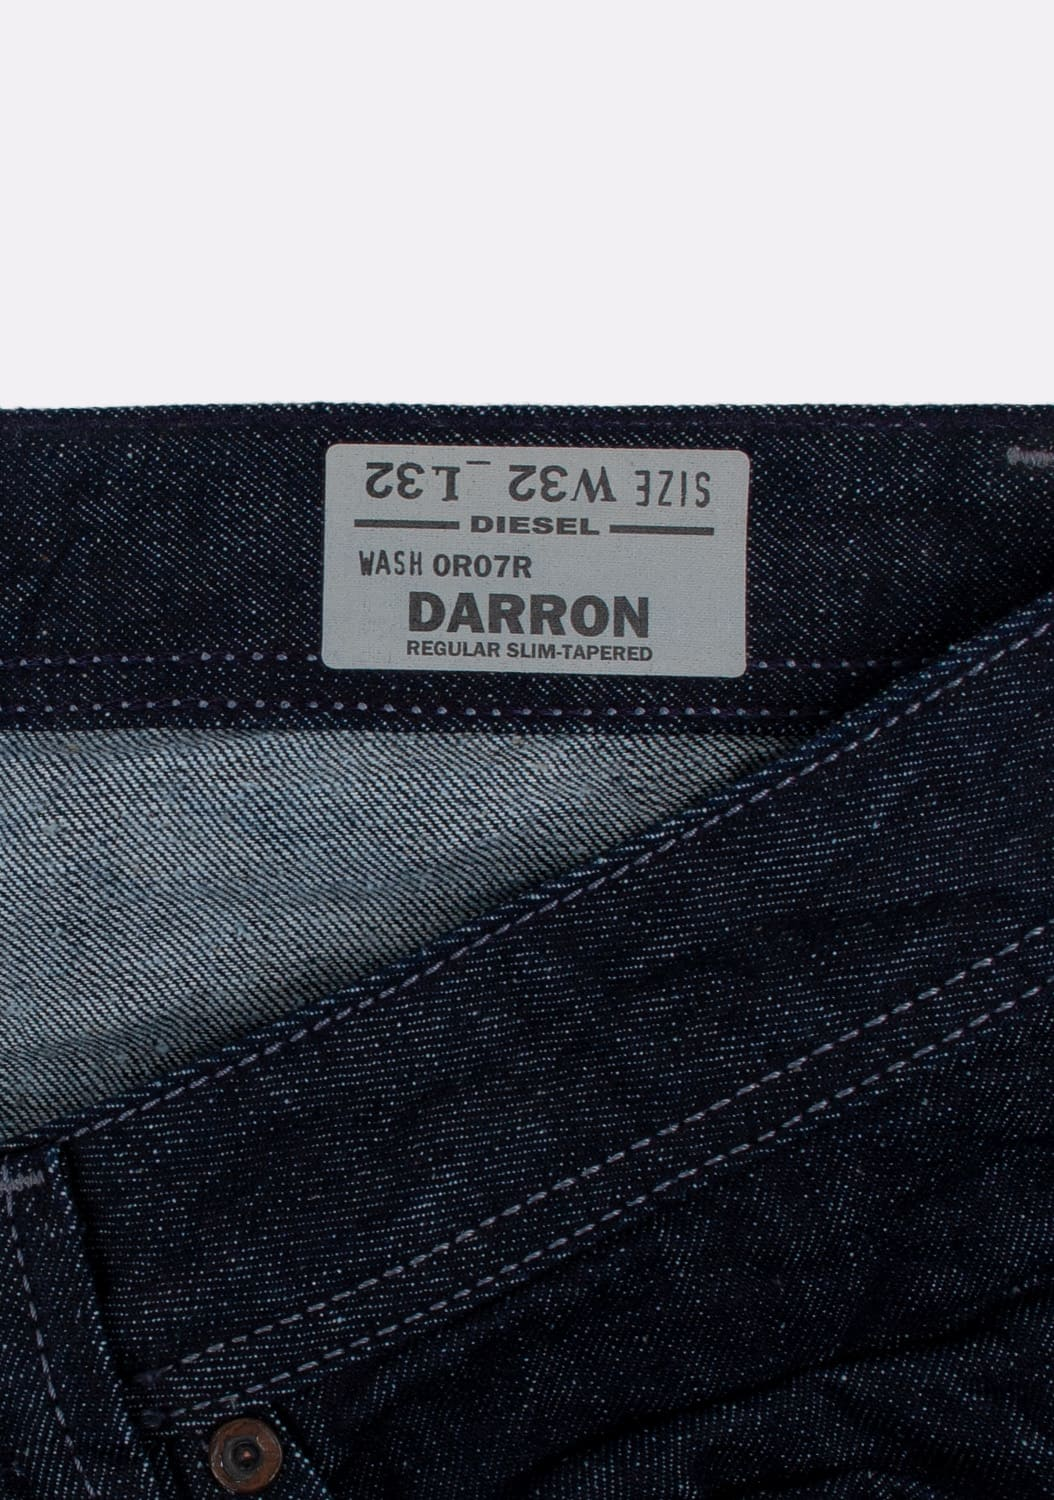 Diesel-Darron-0R07R-Regular-Slim-tapered-dydis-32 (5)